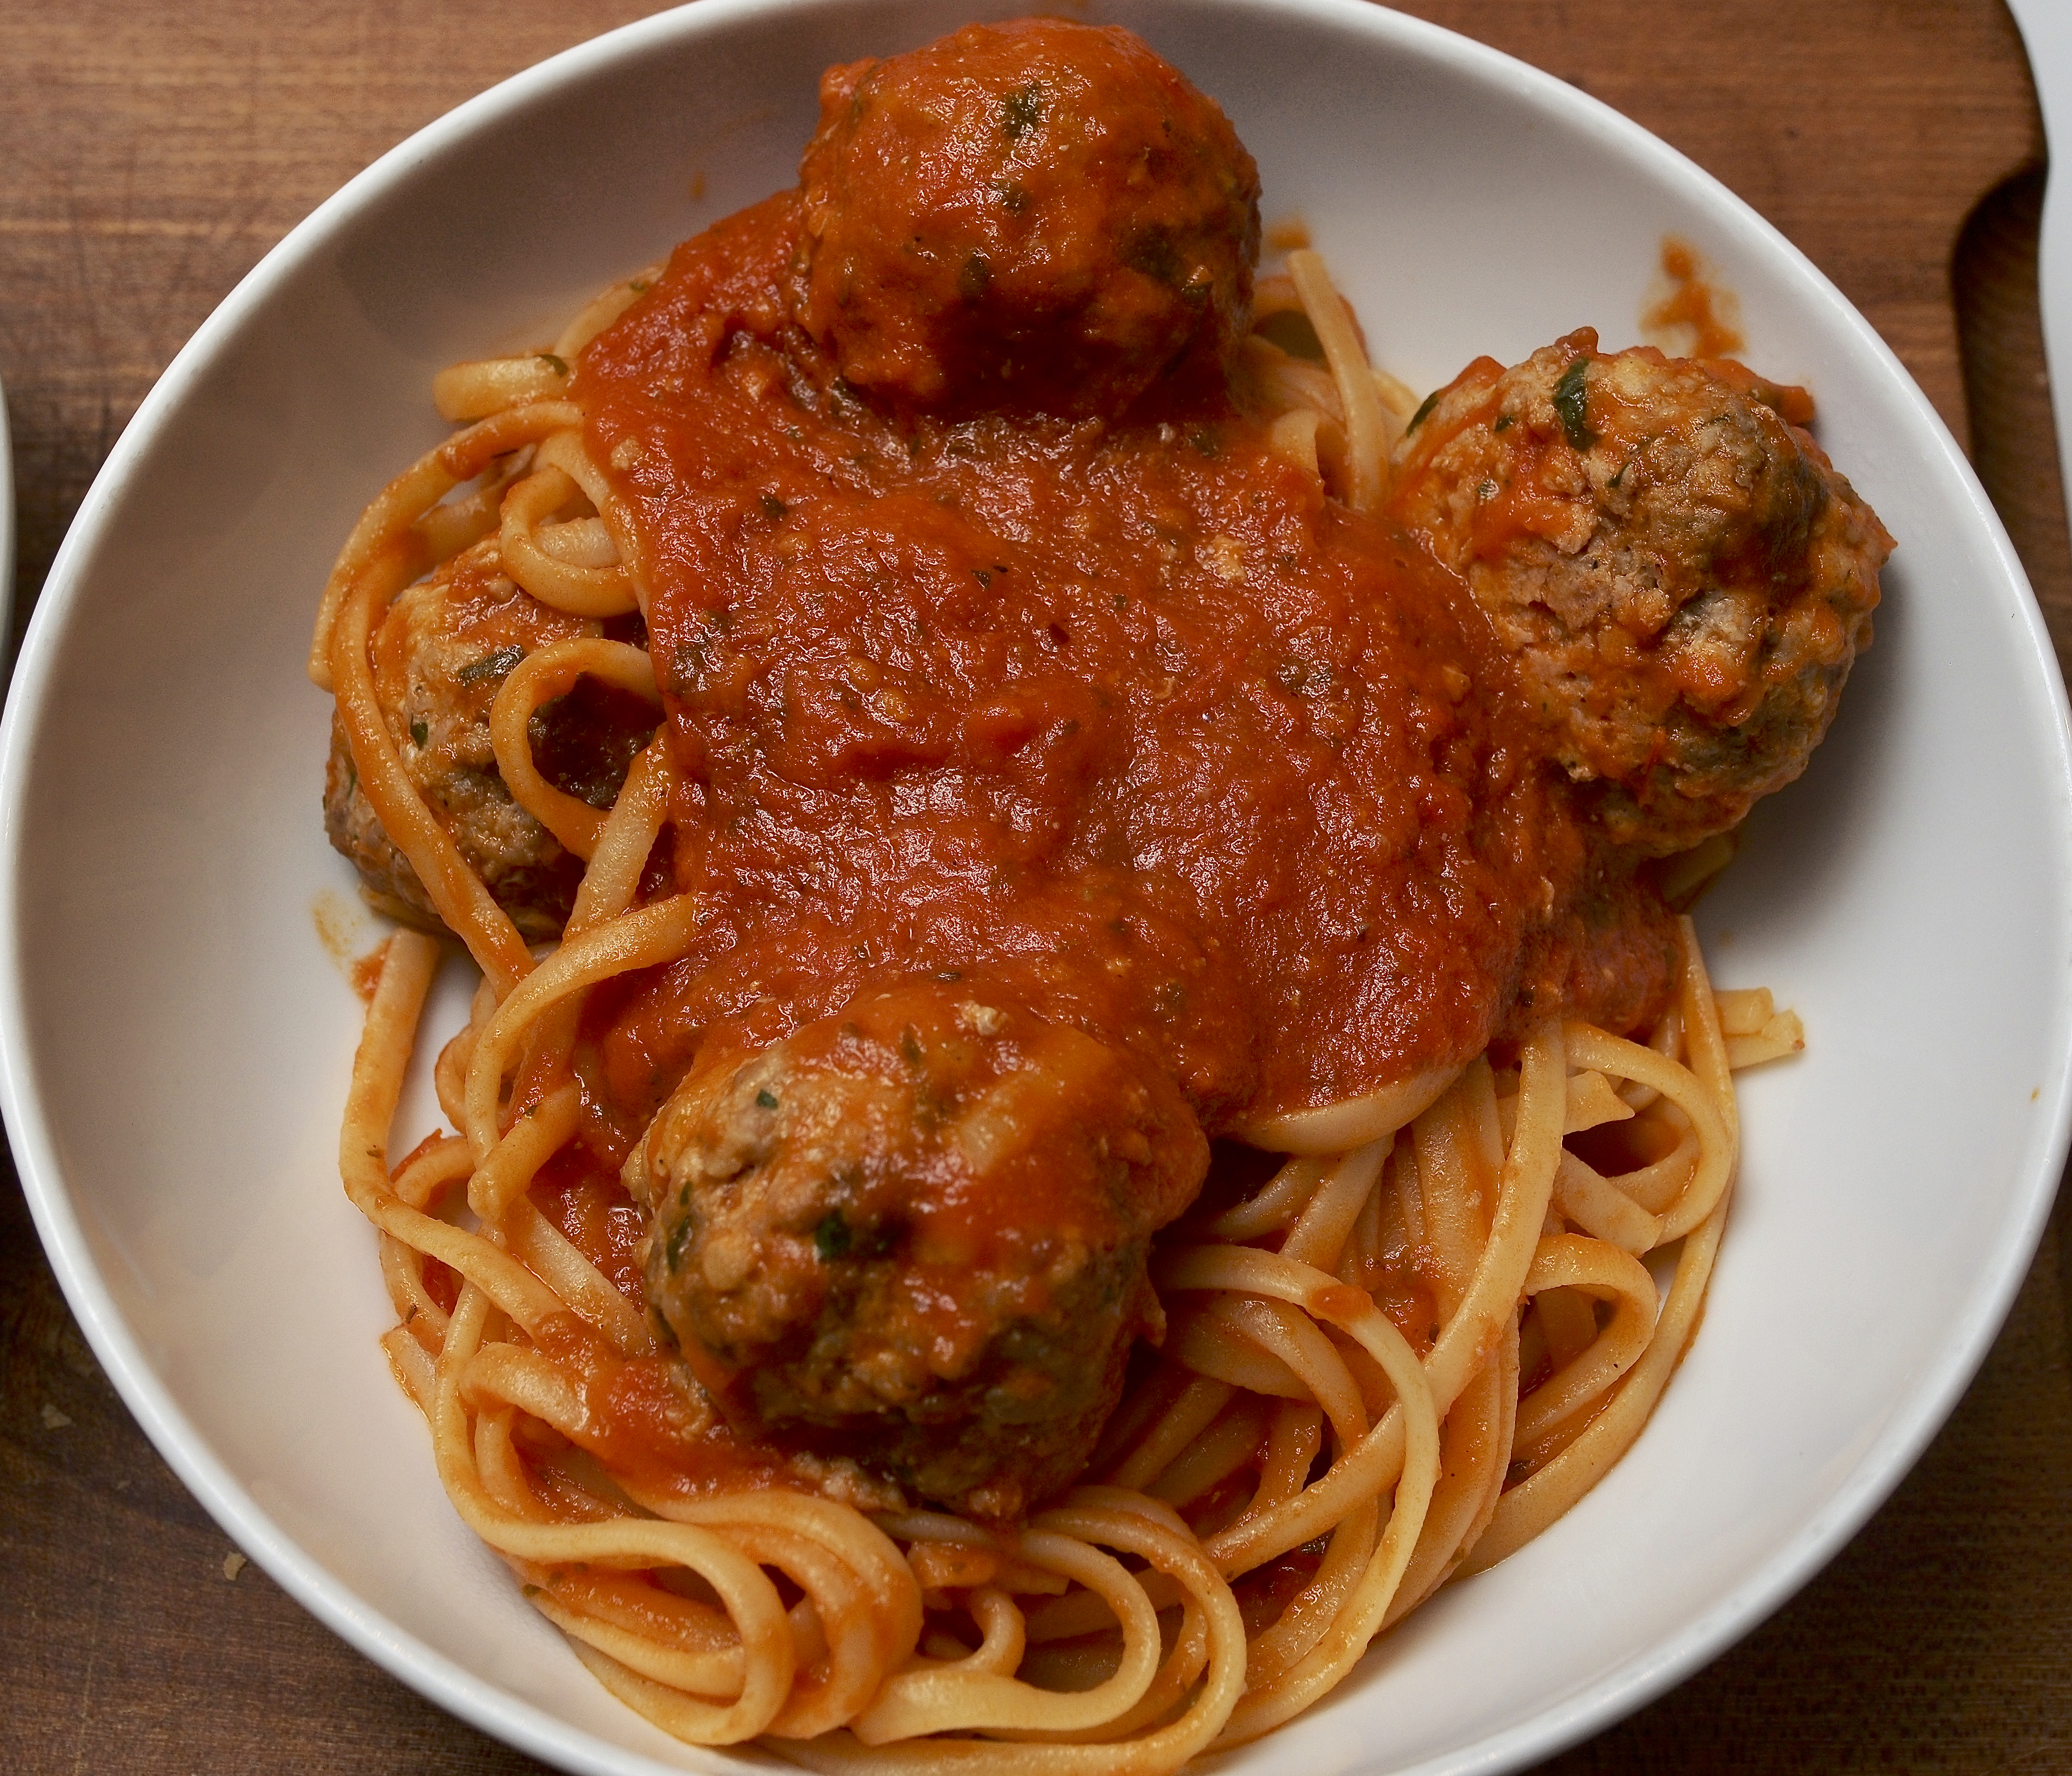 Pork & Beef Polpette with Tomato Sauce